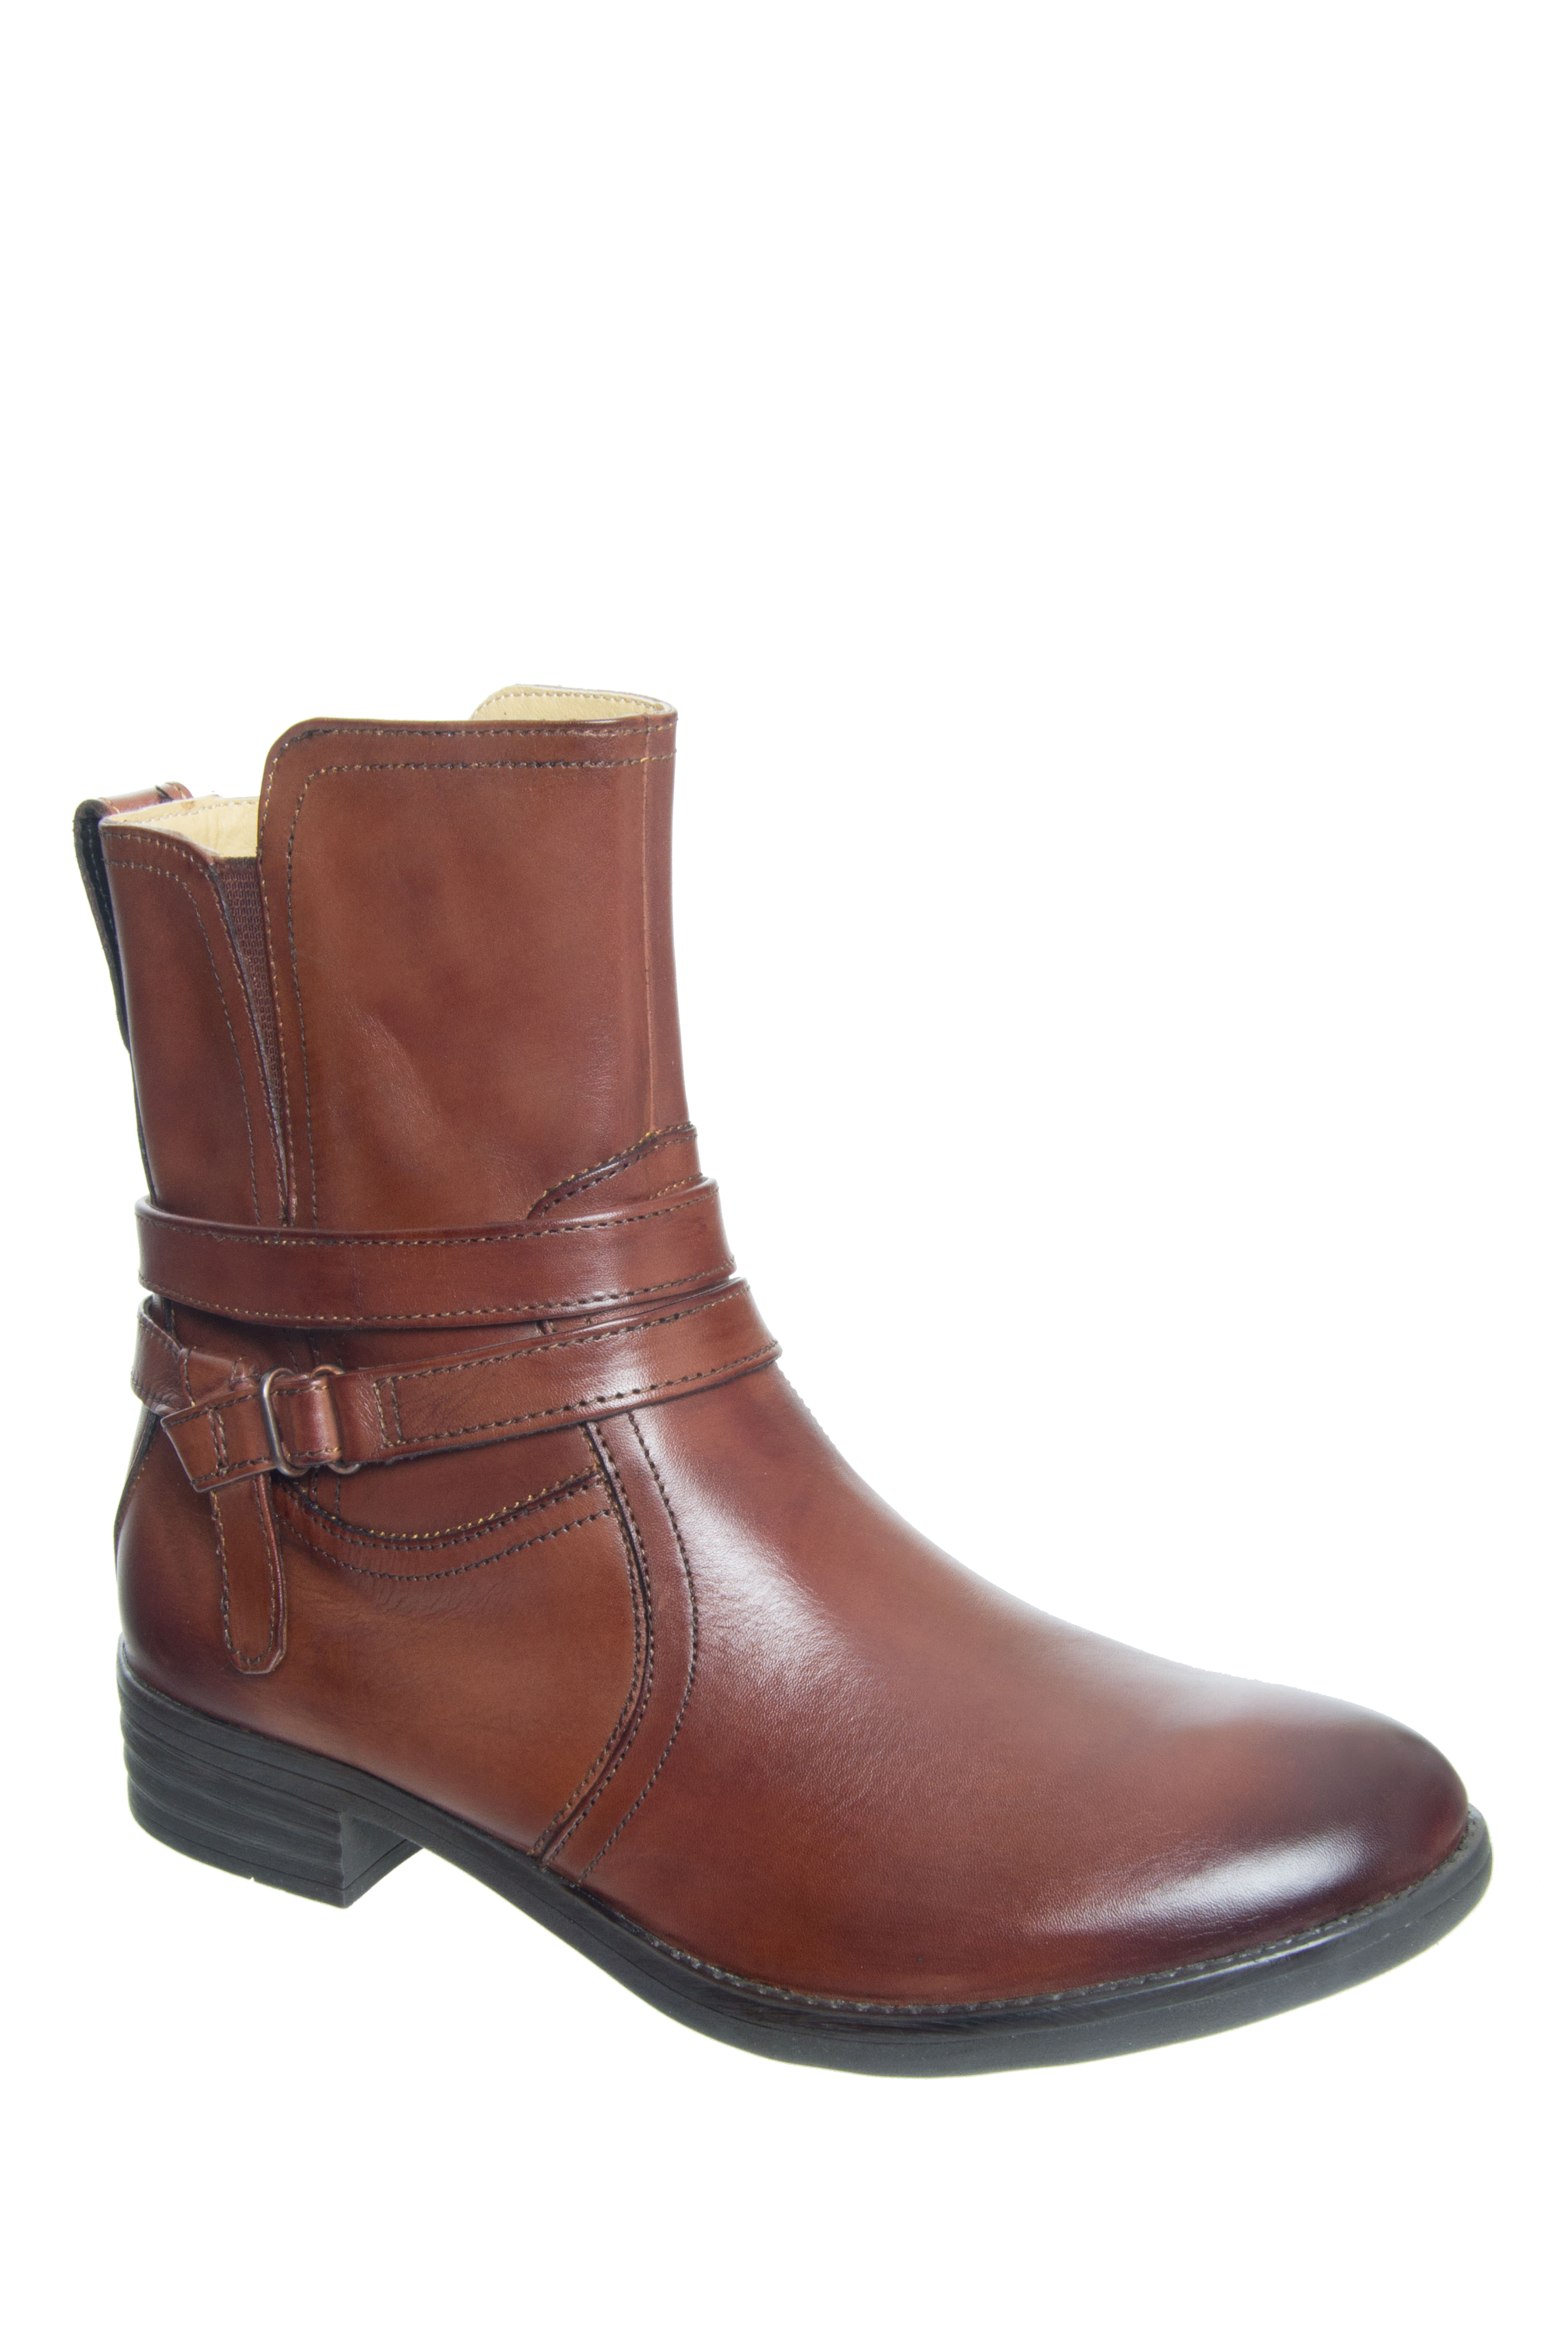 Bussola Tania Low Heel Boots - Russet